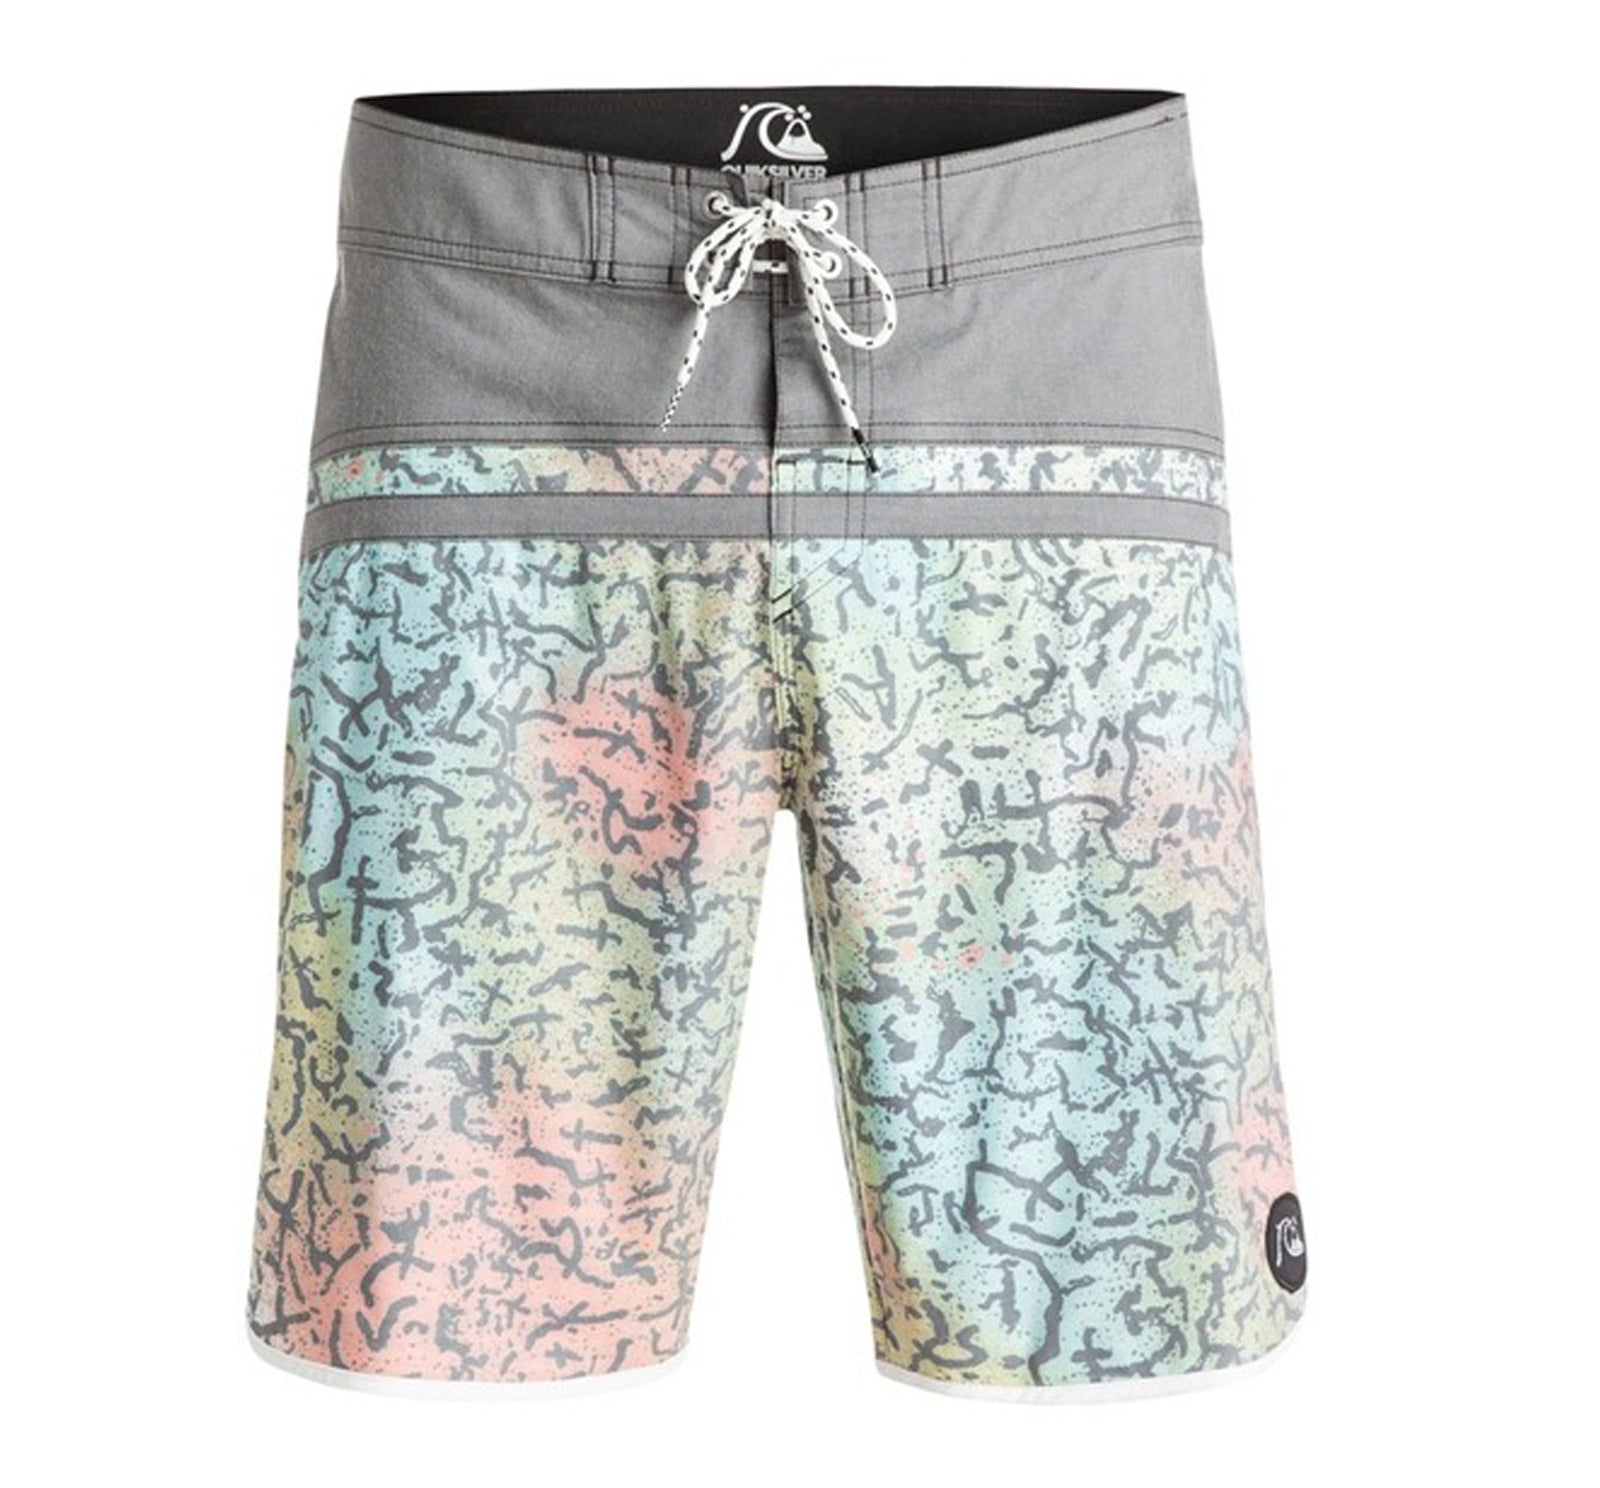 "Quiksilver Stompcracked Scallop 20"" Men's Boardshorts"